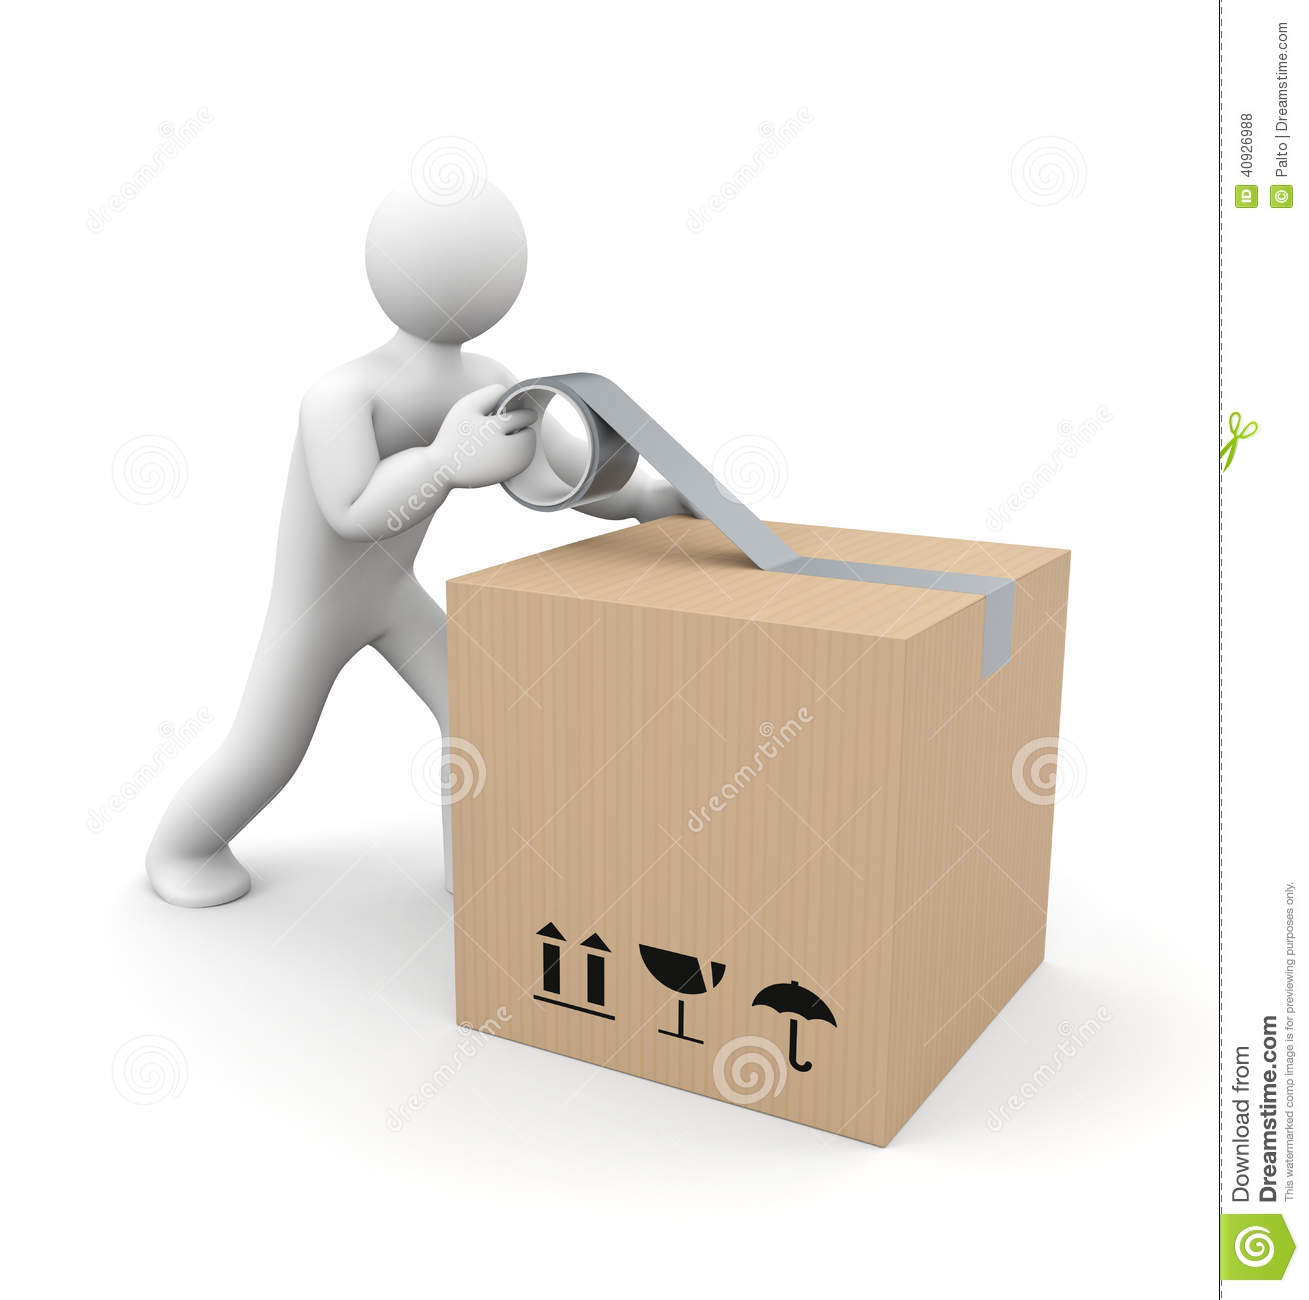 Packing Moving Moving Supplies Ottawa Boxes Ottawa Ottawa